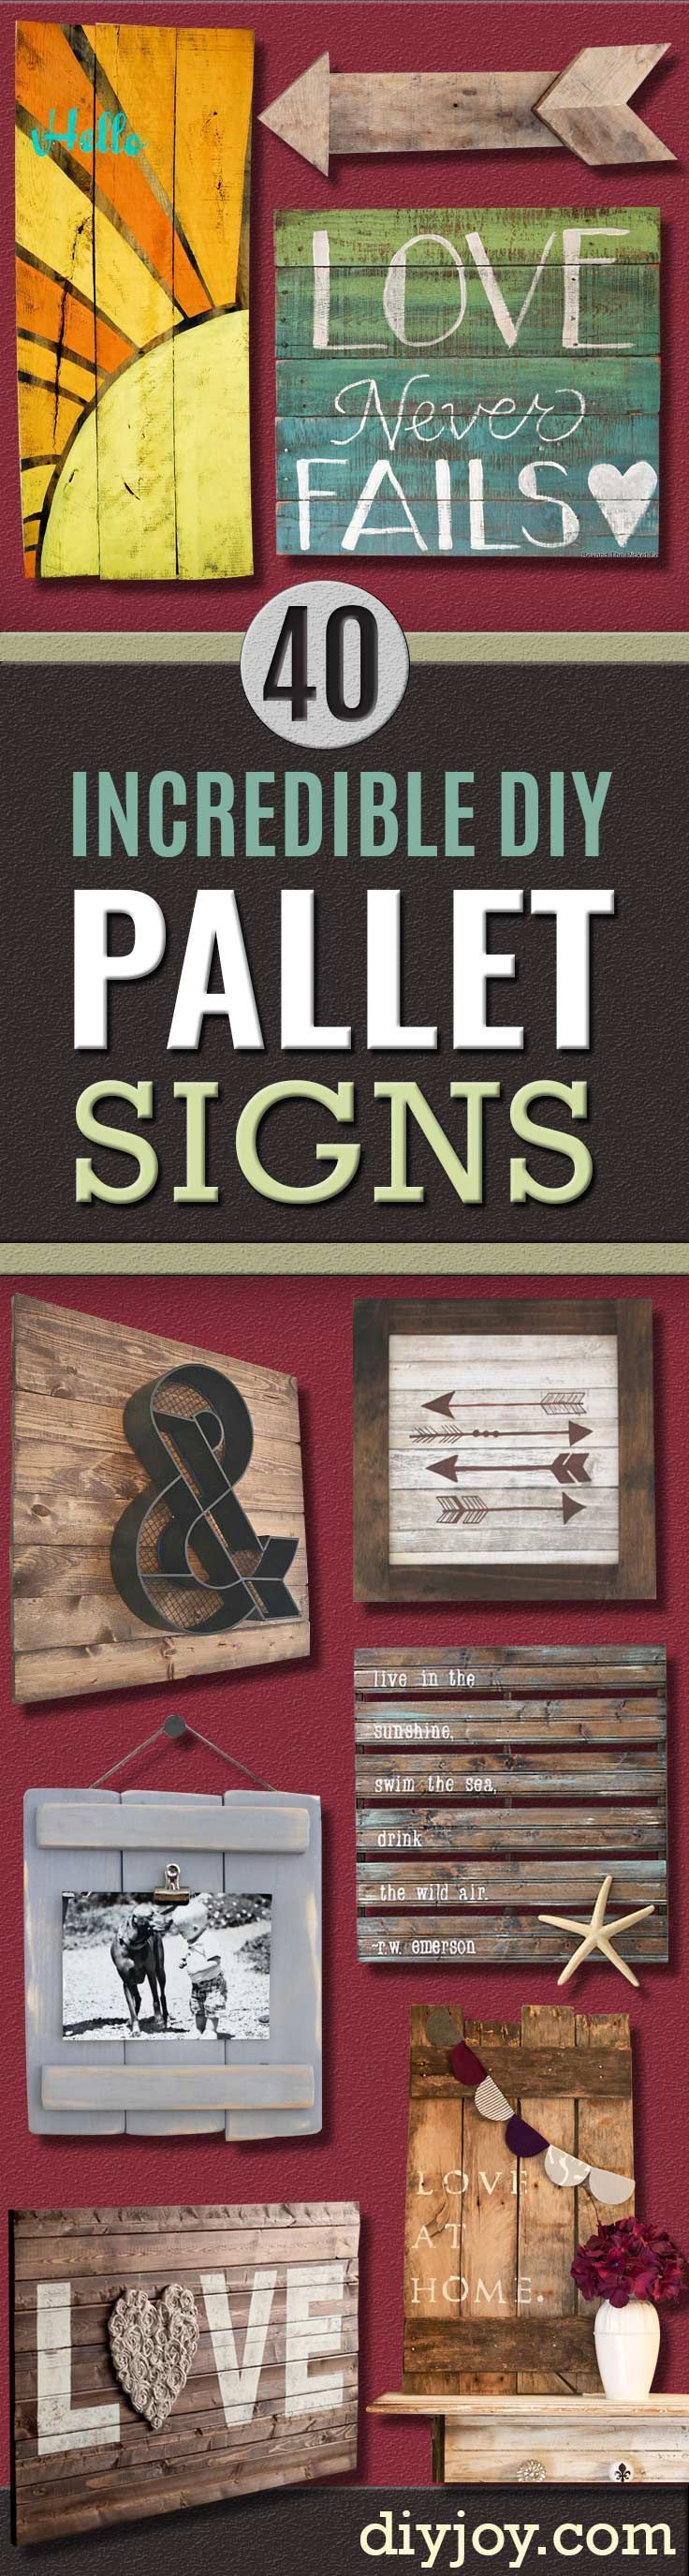 DIY Pallet sign Ideas – Cool Homemade Wall Art Ideas and Pallet Signs for Bedroom, Living Room, Patio and